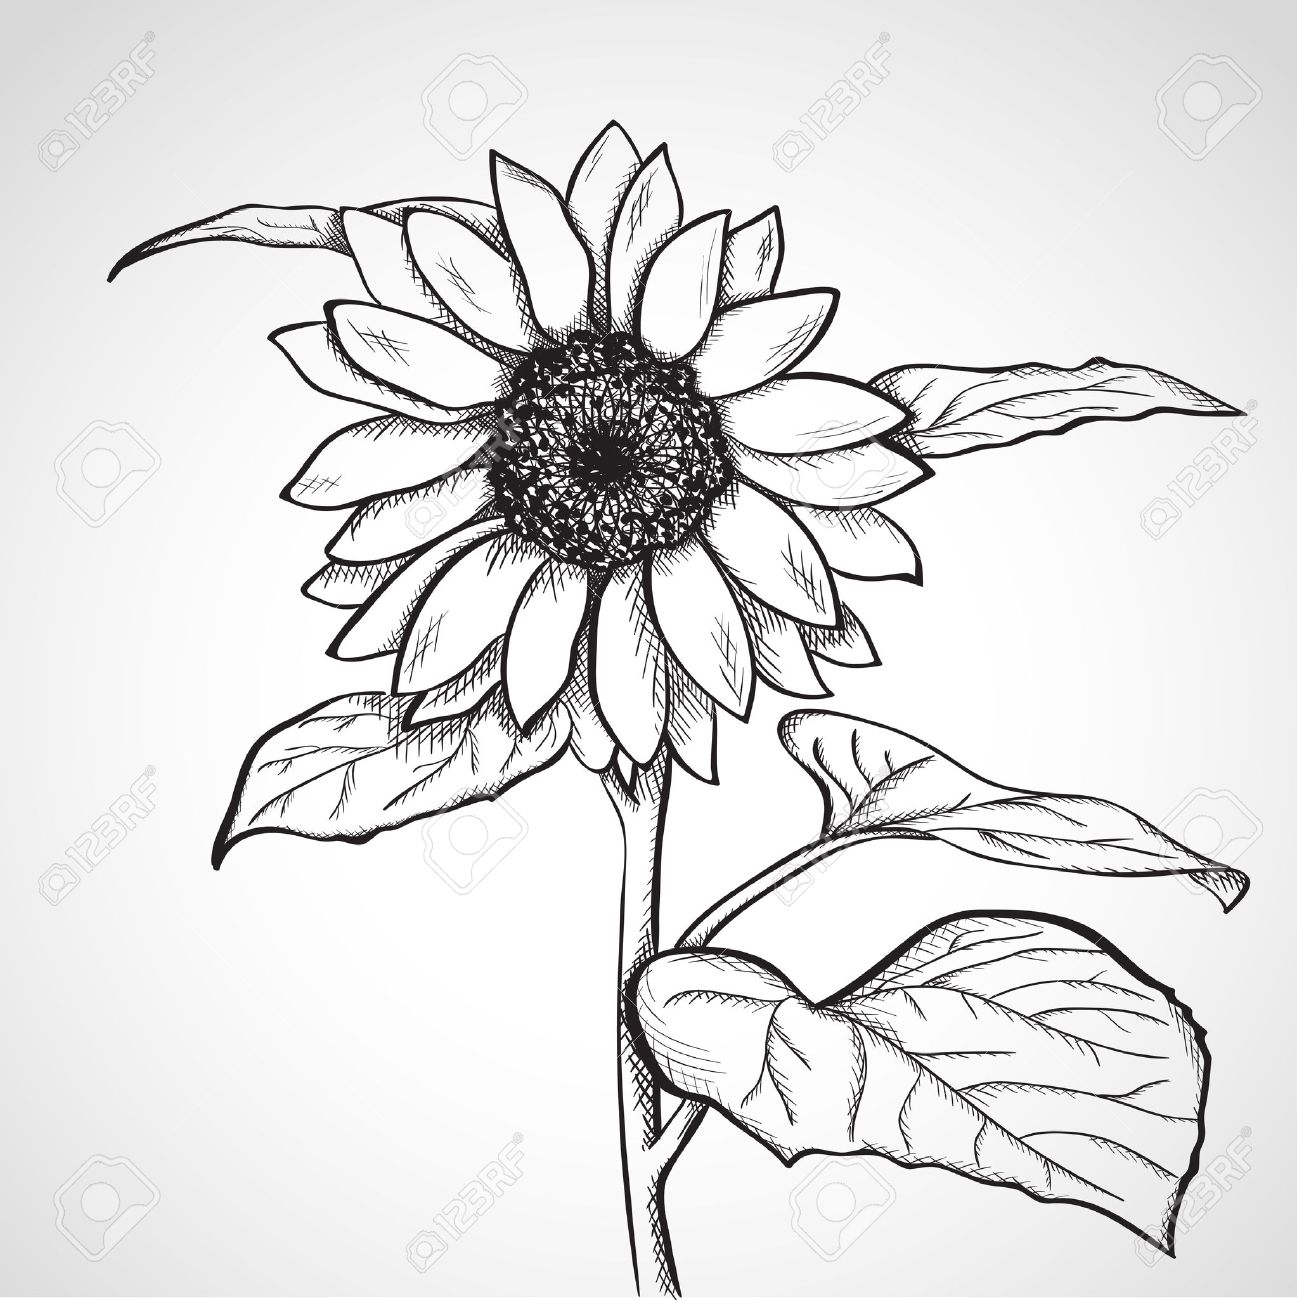 28,969 Sunflower Cliparts, Stock Vector And Royalty Free Sunflower ... for Clipart Sunflower Black And White  66pct